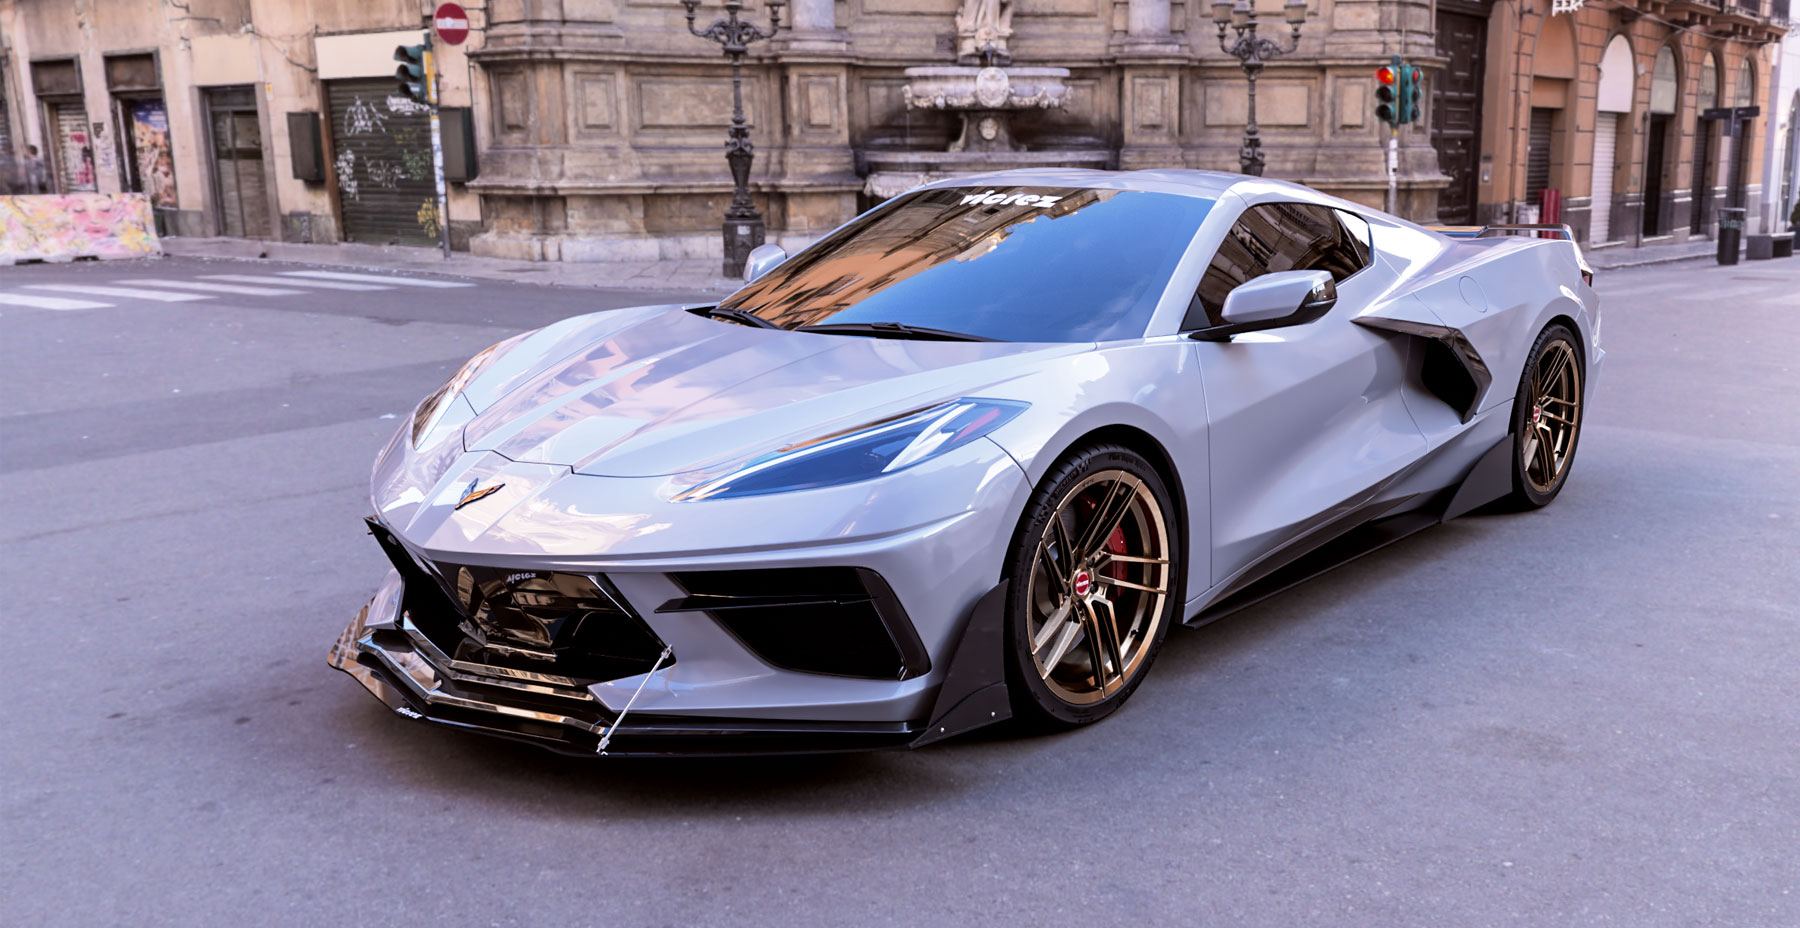 Corvette C8 x Vicrez V3F Forged Wheels  (Finished in Brushed Bronze) Palermo, Italy